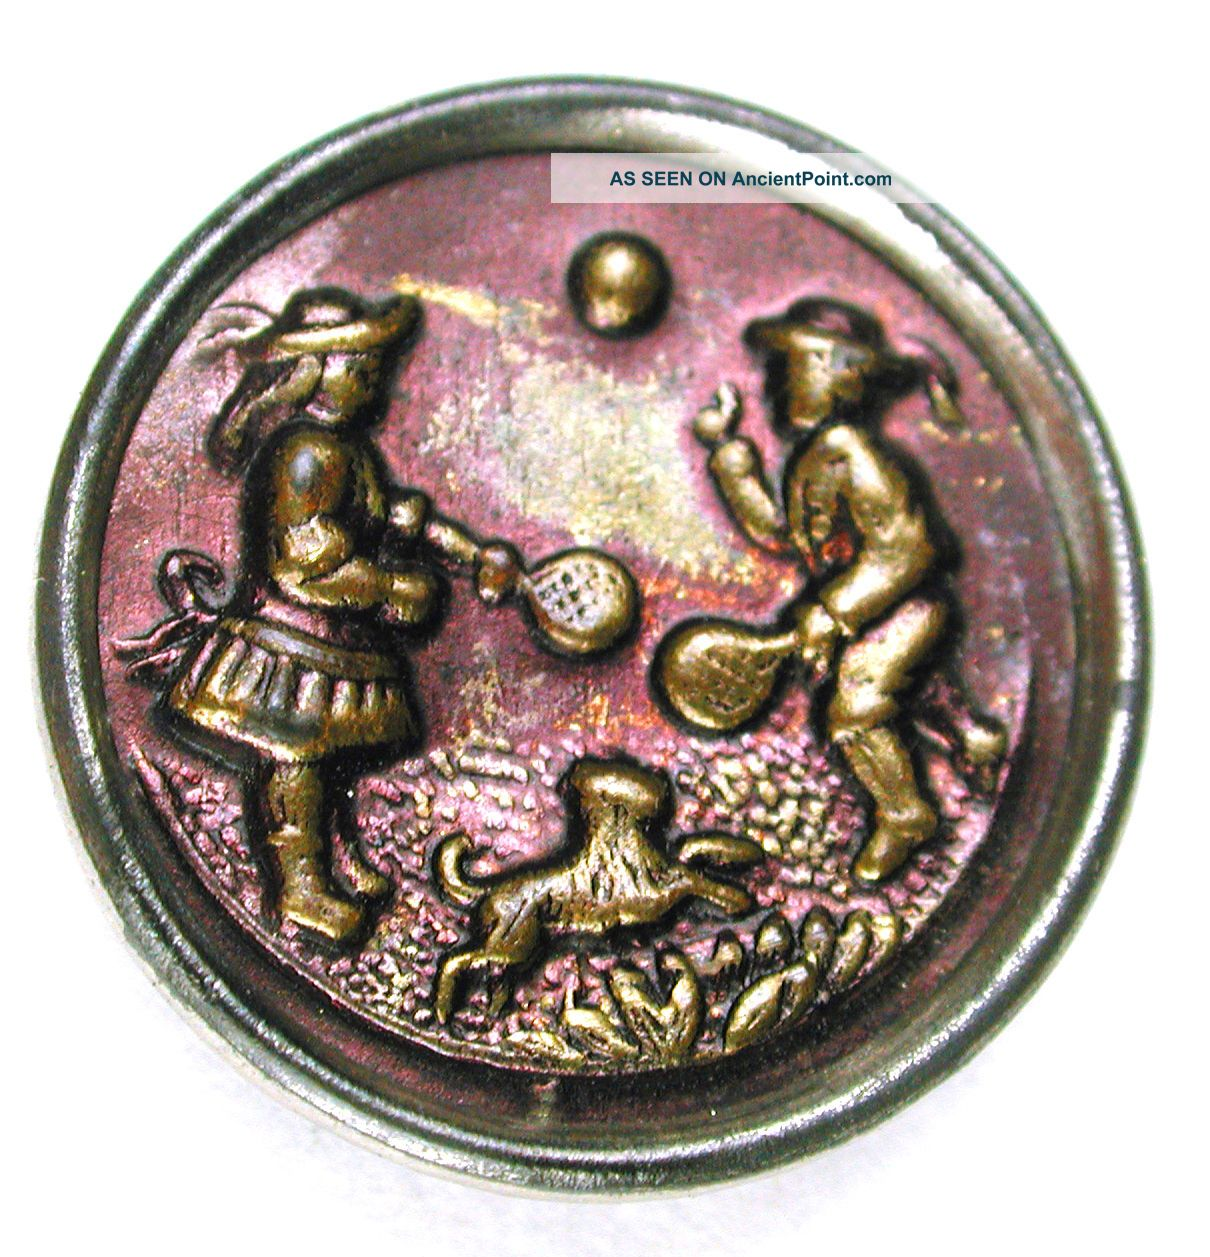 Antique Brass Button 2 Young Children & Dog Playing Scene - 11/16